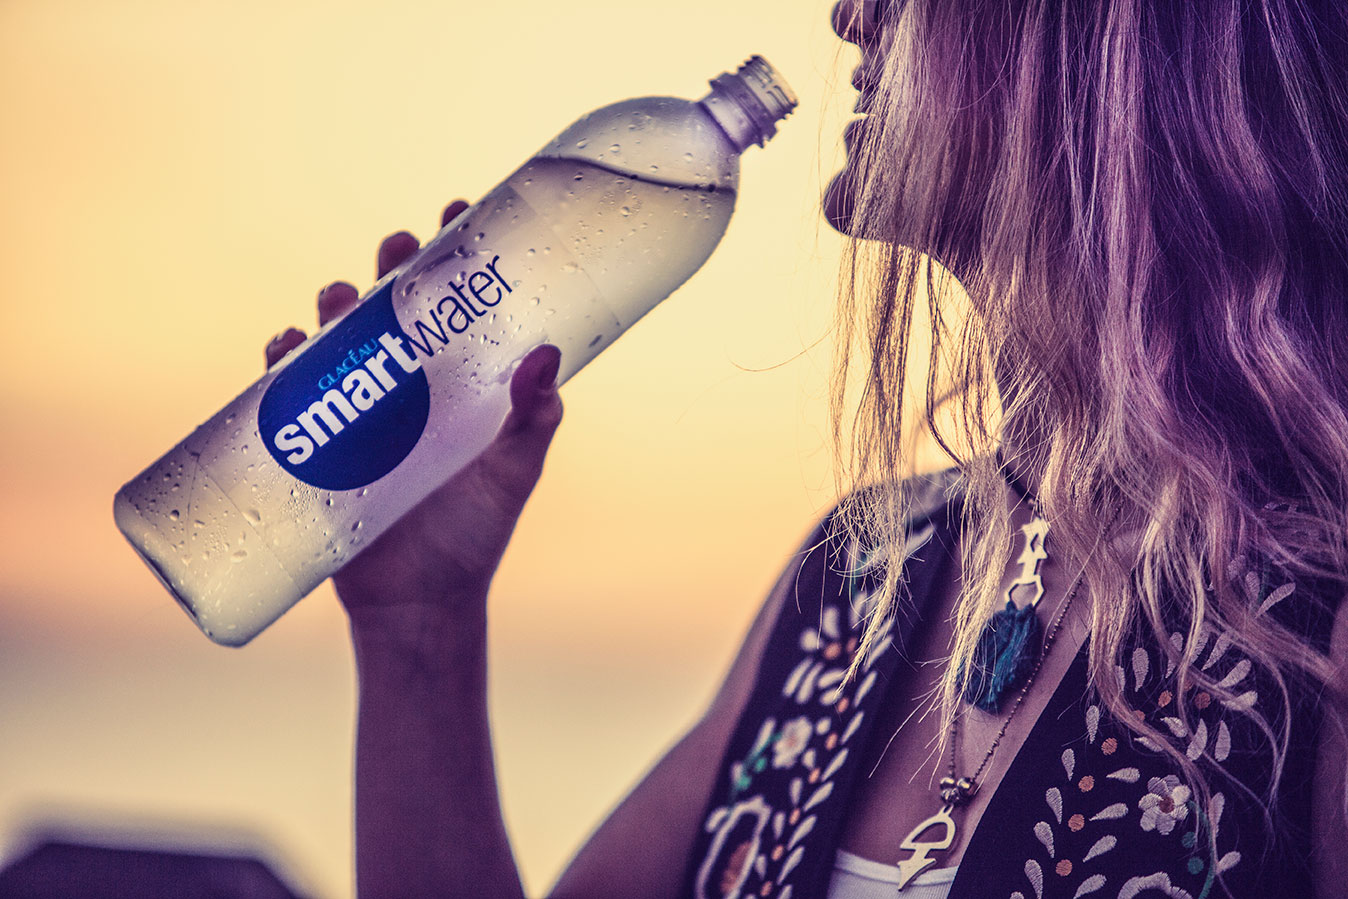 "<a href=""category-5-ADVERTISING"">SMART WATER BEACH</a>"